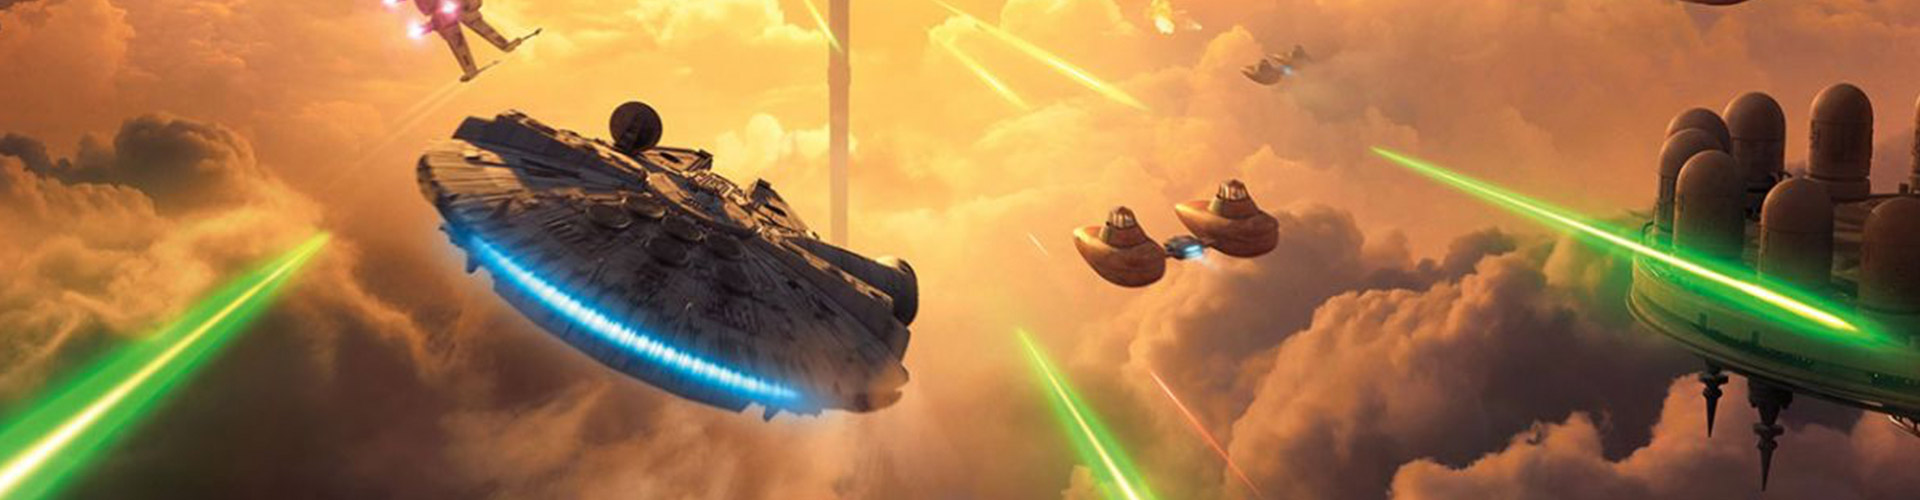 star-wars-battlefront-2-header.jpg